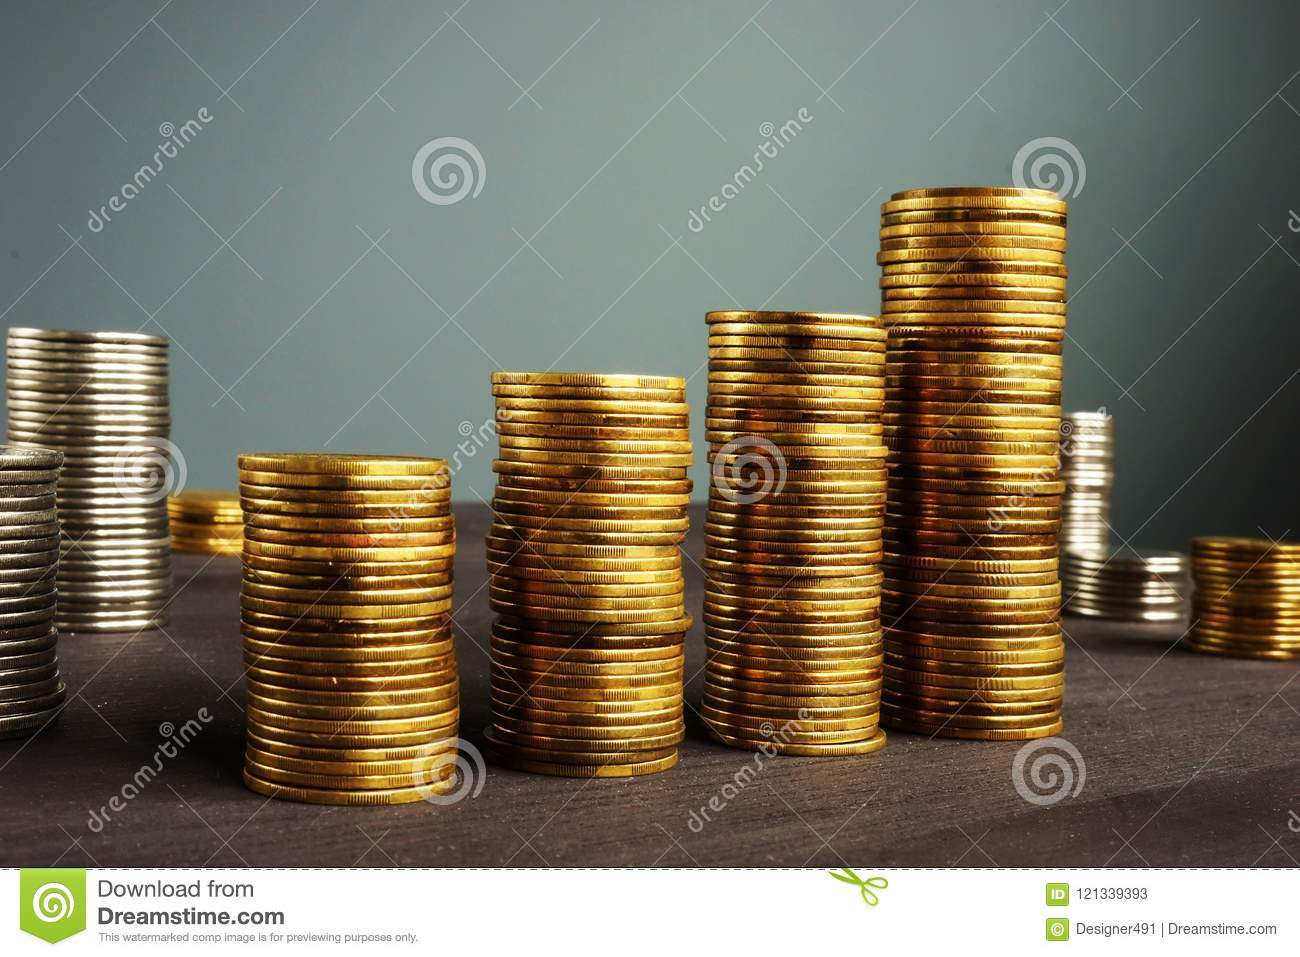 Business success. Coins stackson a desk. Financial growth.